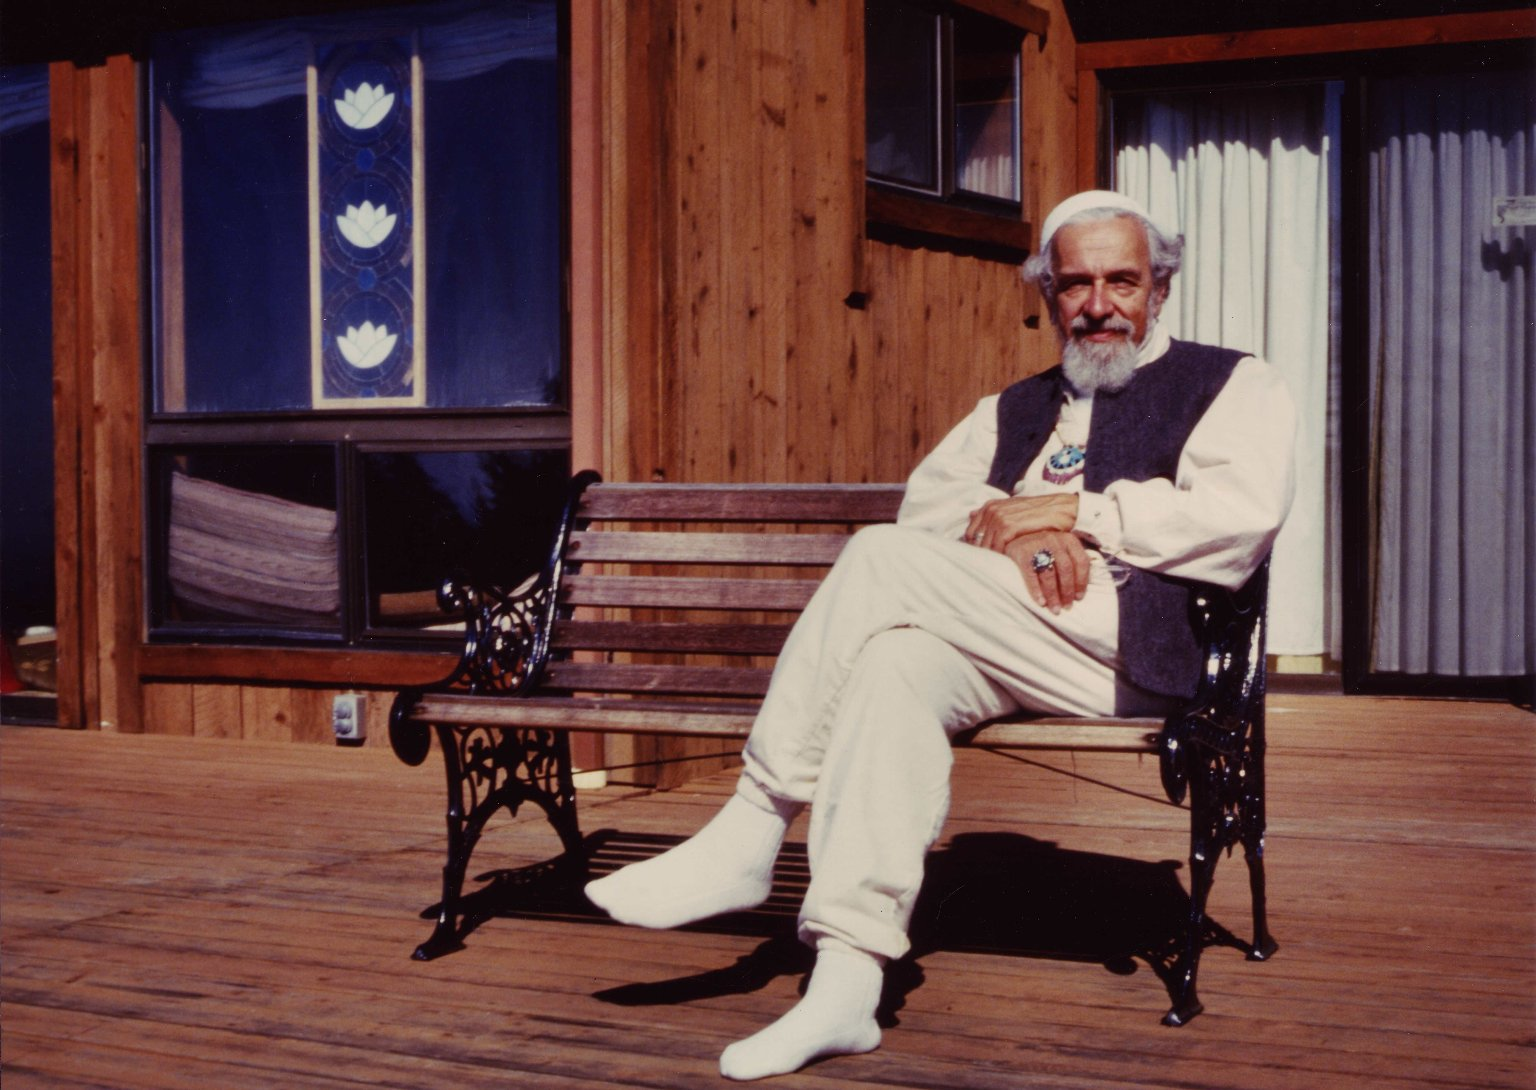 Rabbi Zalman Schachter-Shalomi seated on a bench at the Mount Madonna Center, ca. 1999.